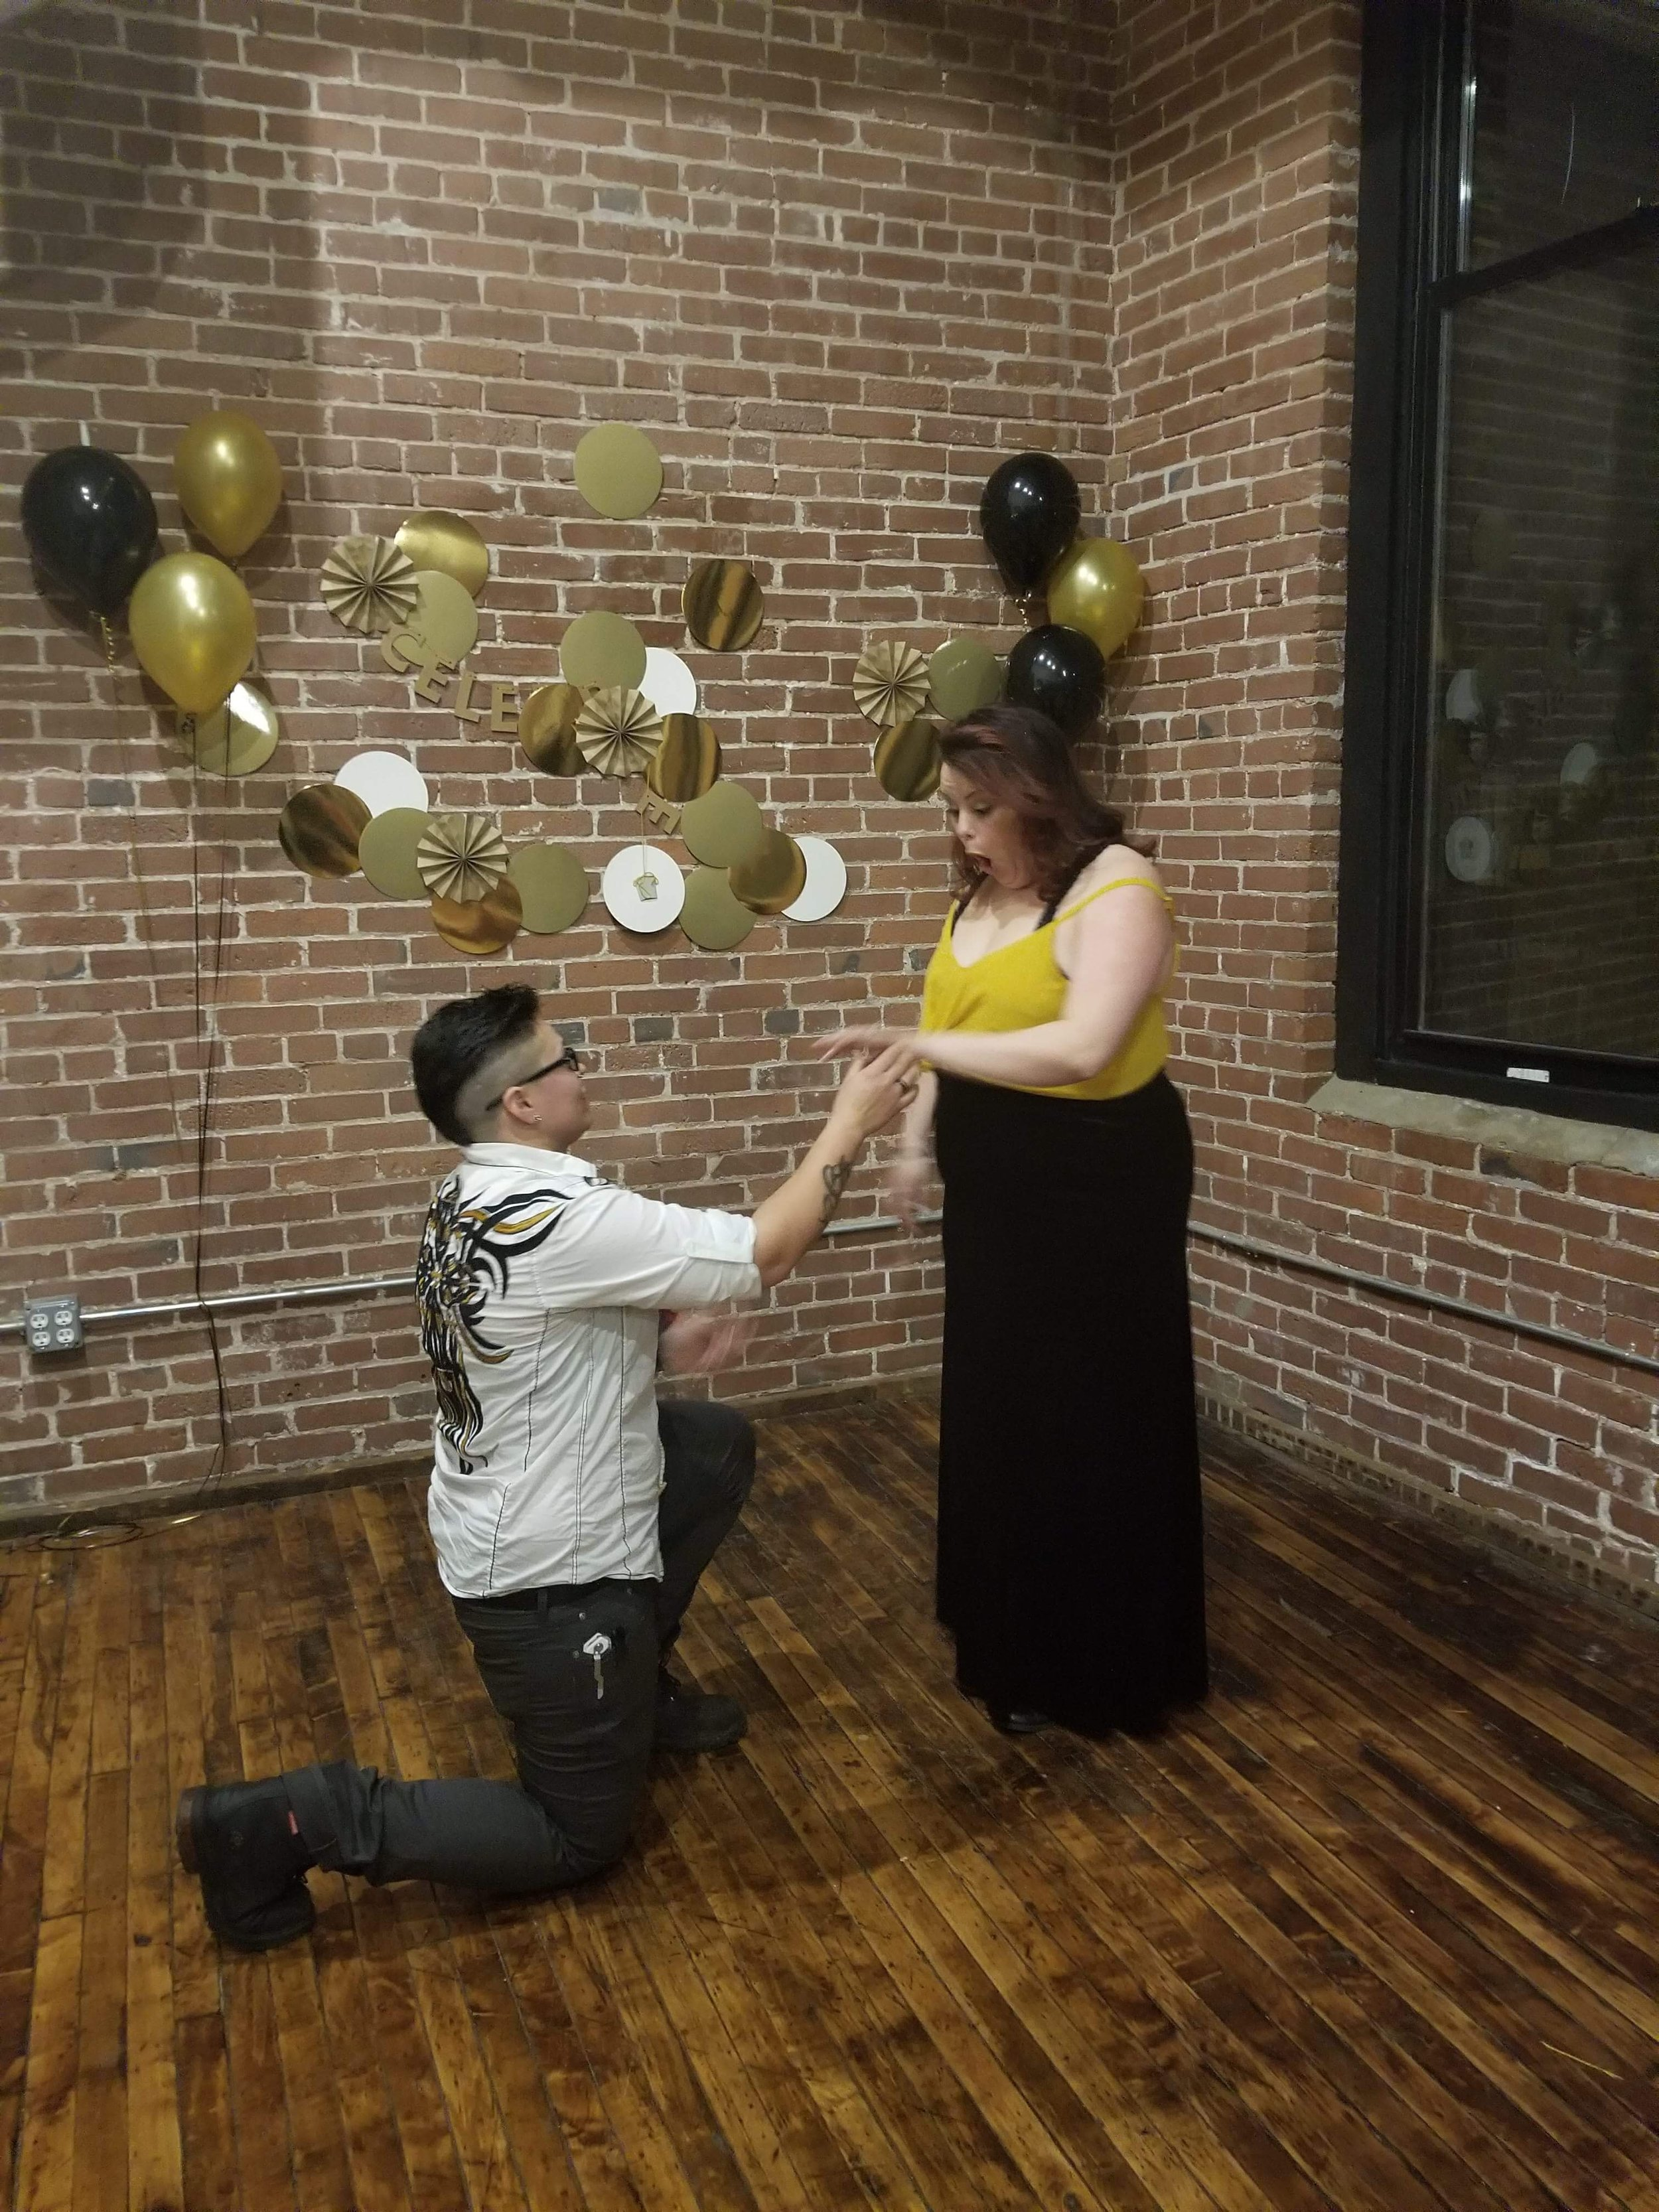 Jordan is great at surprises - At the grand opening of the studio in March 2018, Jordan surprised Amanda by getting down on one knee in front of their friends and family and gave her a new wedding ring set after her previous ring was stolen months before. Proof, despite what Amanda had been saying for the last 4 years, that Jordan is actually really great surprises.